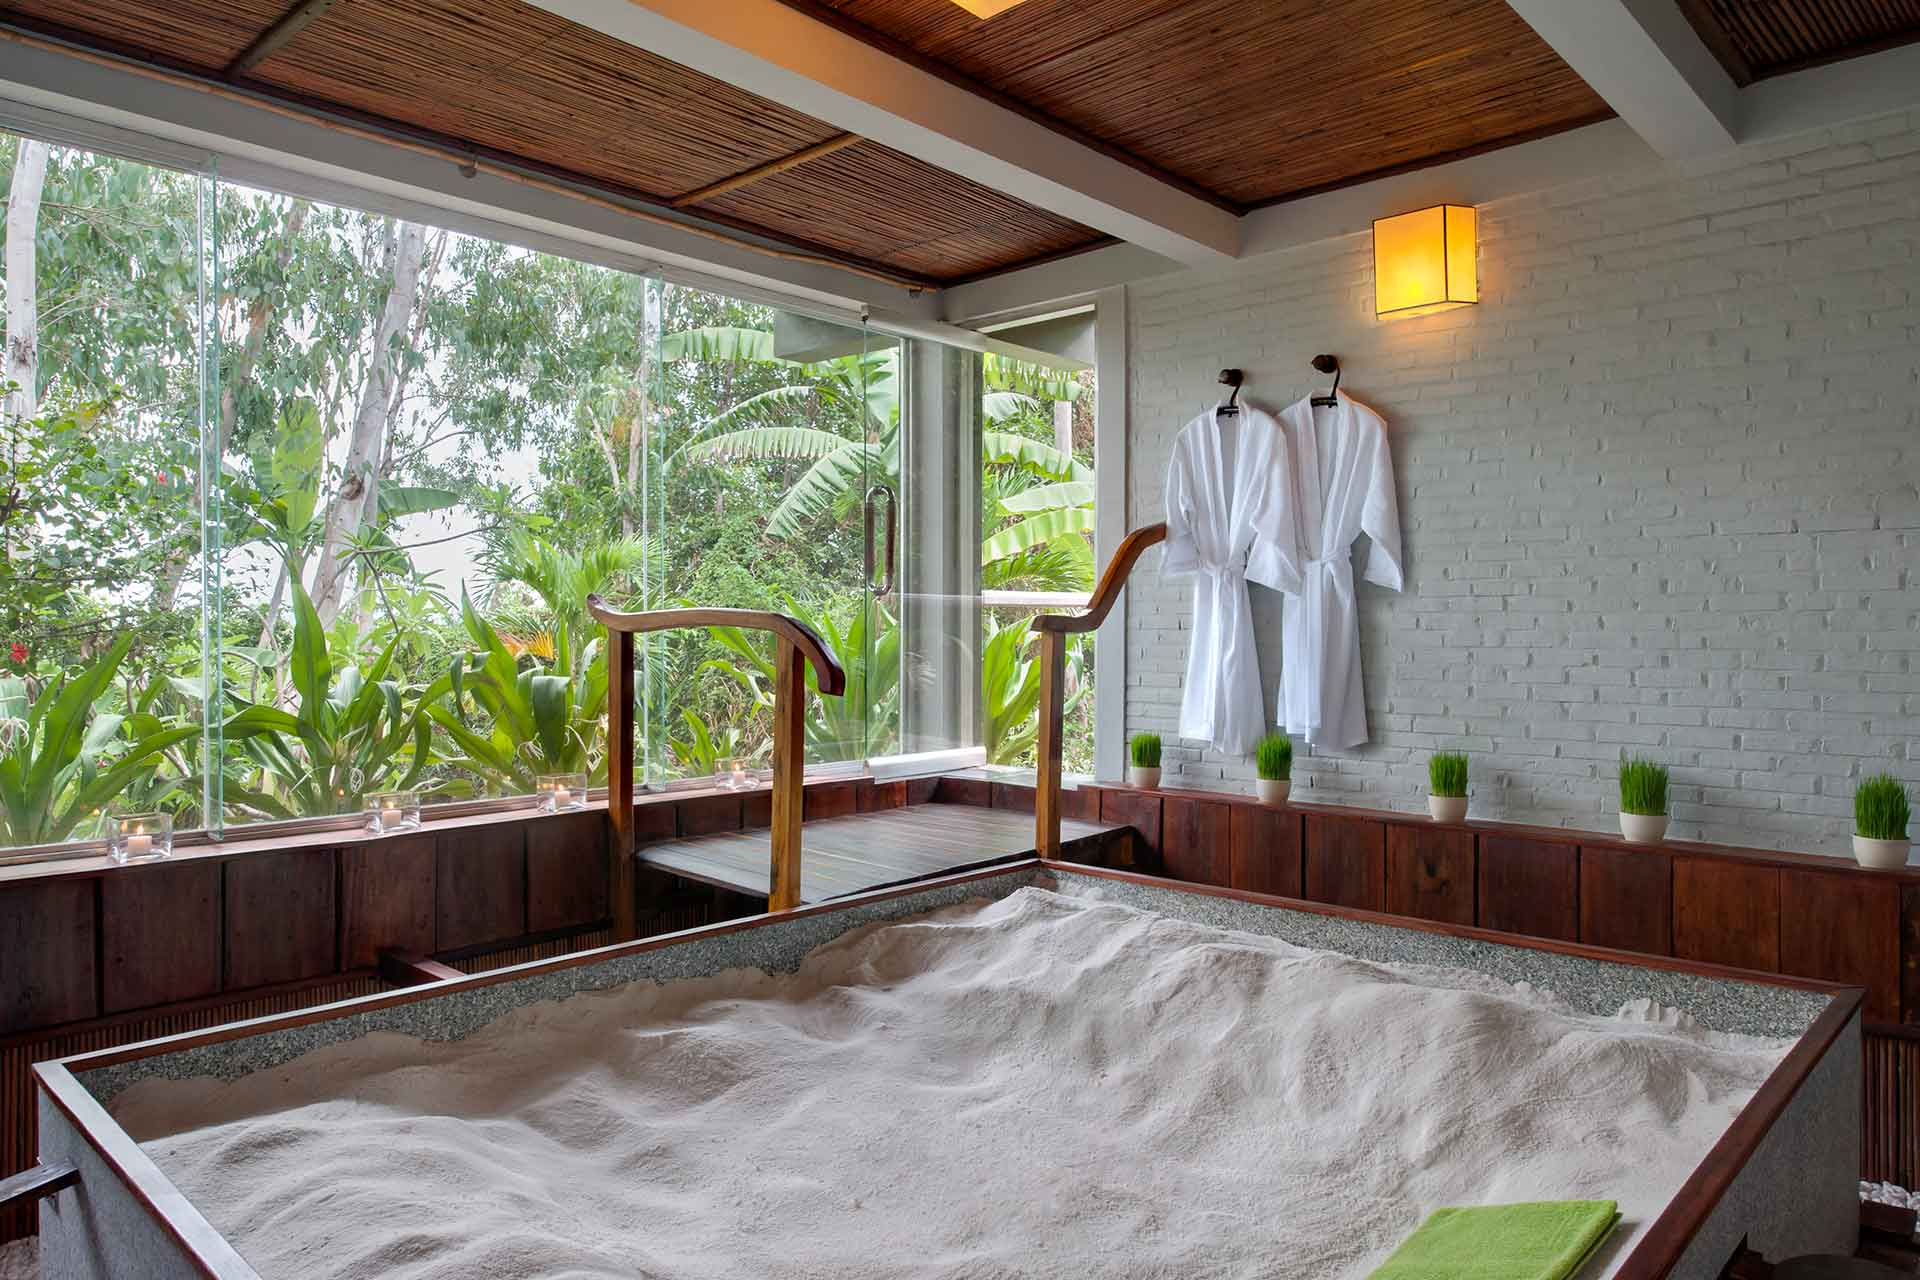 Japanese sand Sauna at AVANI resort in Quy Nhon